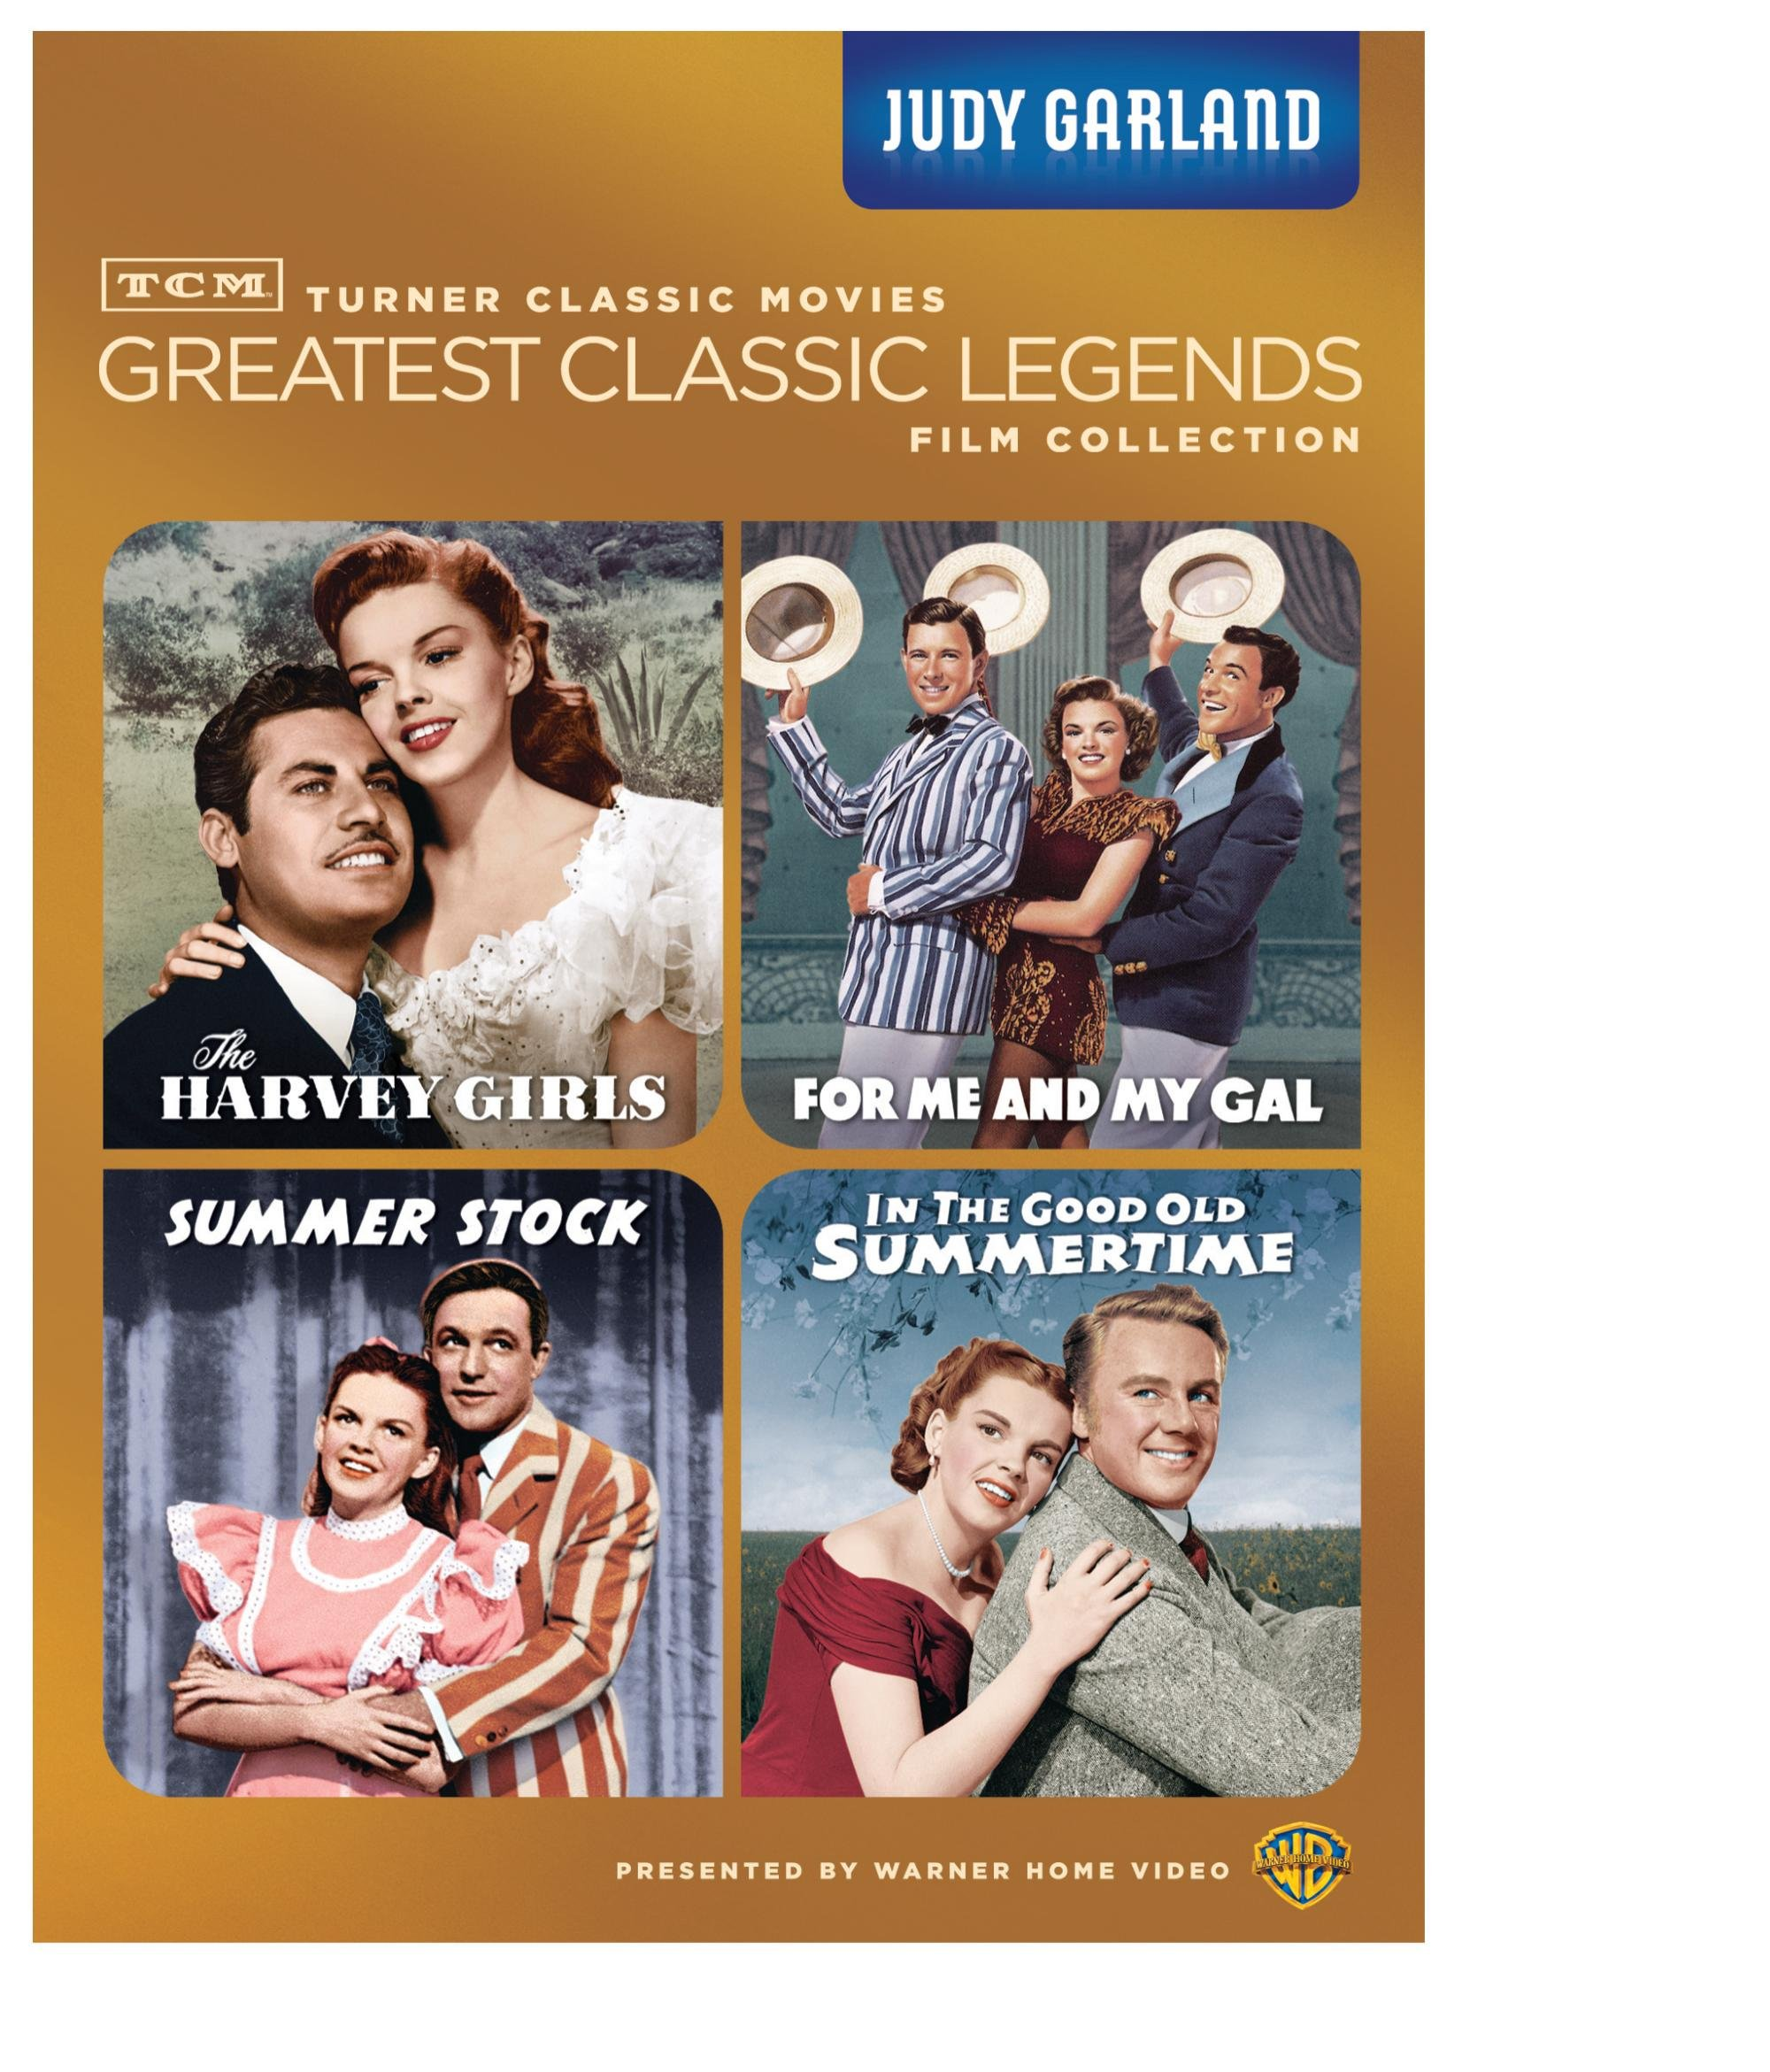 TCM Greatest Classics Legends: Judy Garland (The Harvey Girls / For Me and My Gal / Summer Stock / In The Good Old Summertime) by Warner Home Video